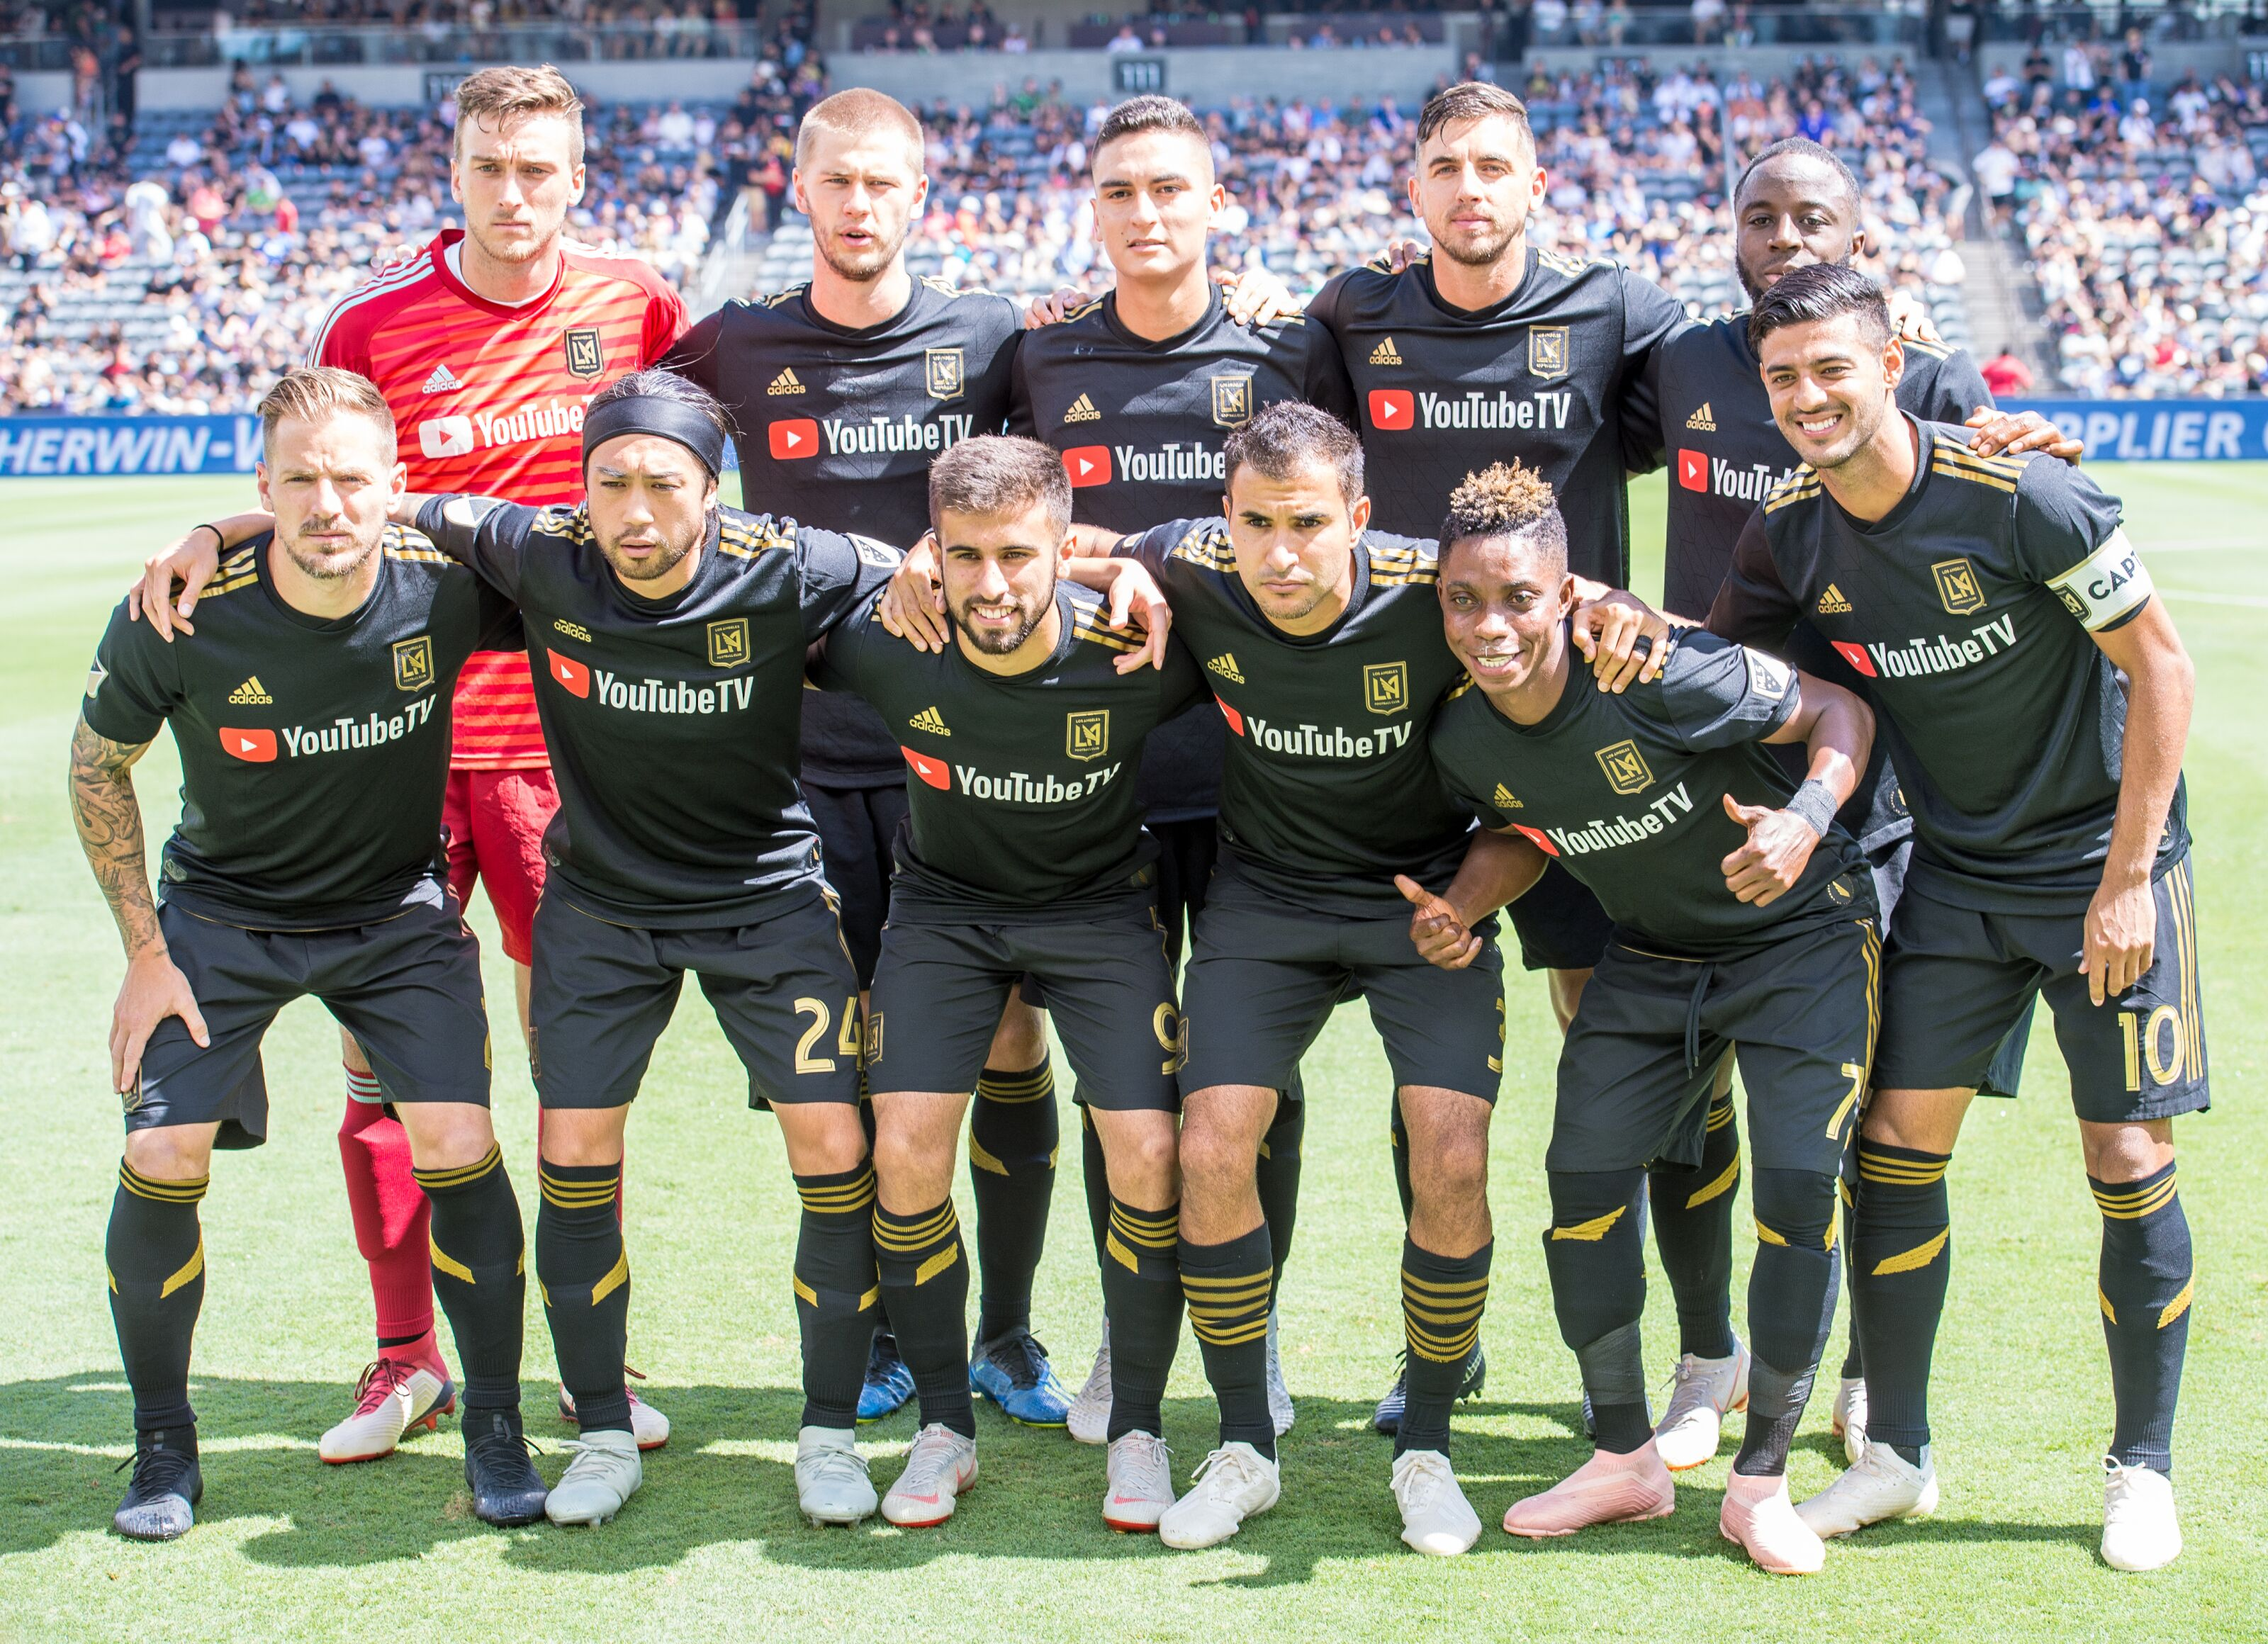 2dc496f38 LAFC Vs Colorado Rapids  3 things we learned - Diomande returns to form